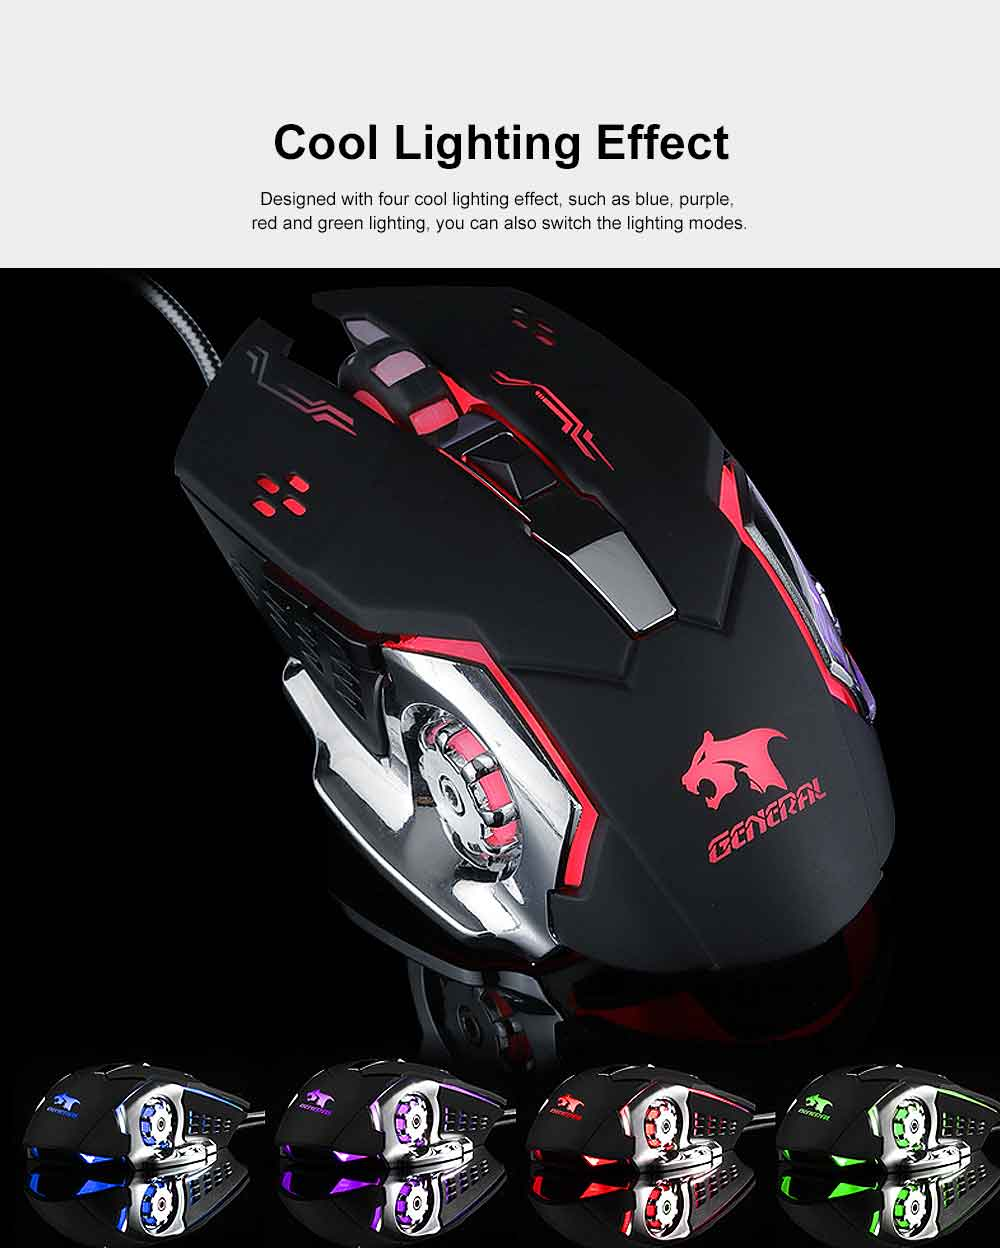 Four DPI Adjustment Mouse with LED for Game Play Computer Case High-performance Wired Mouse 3